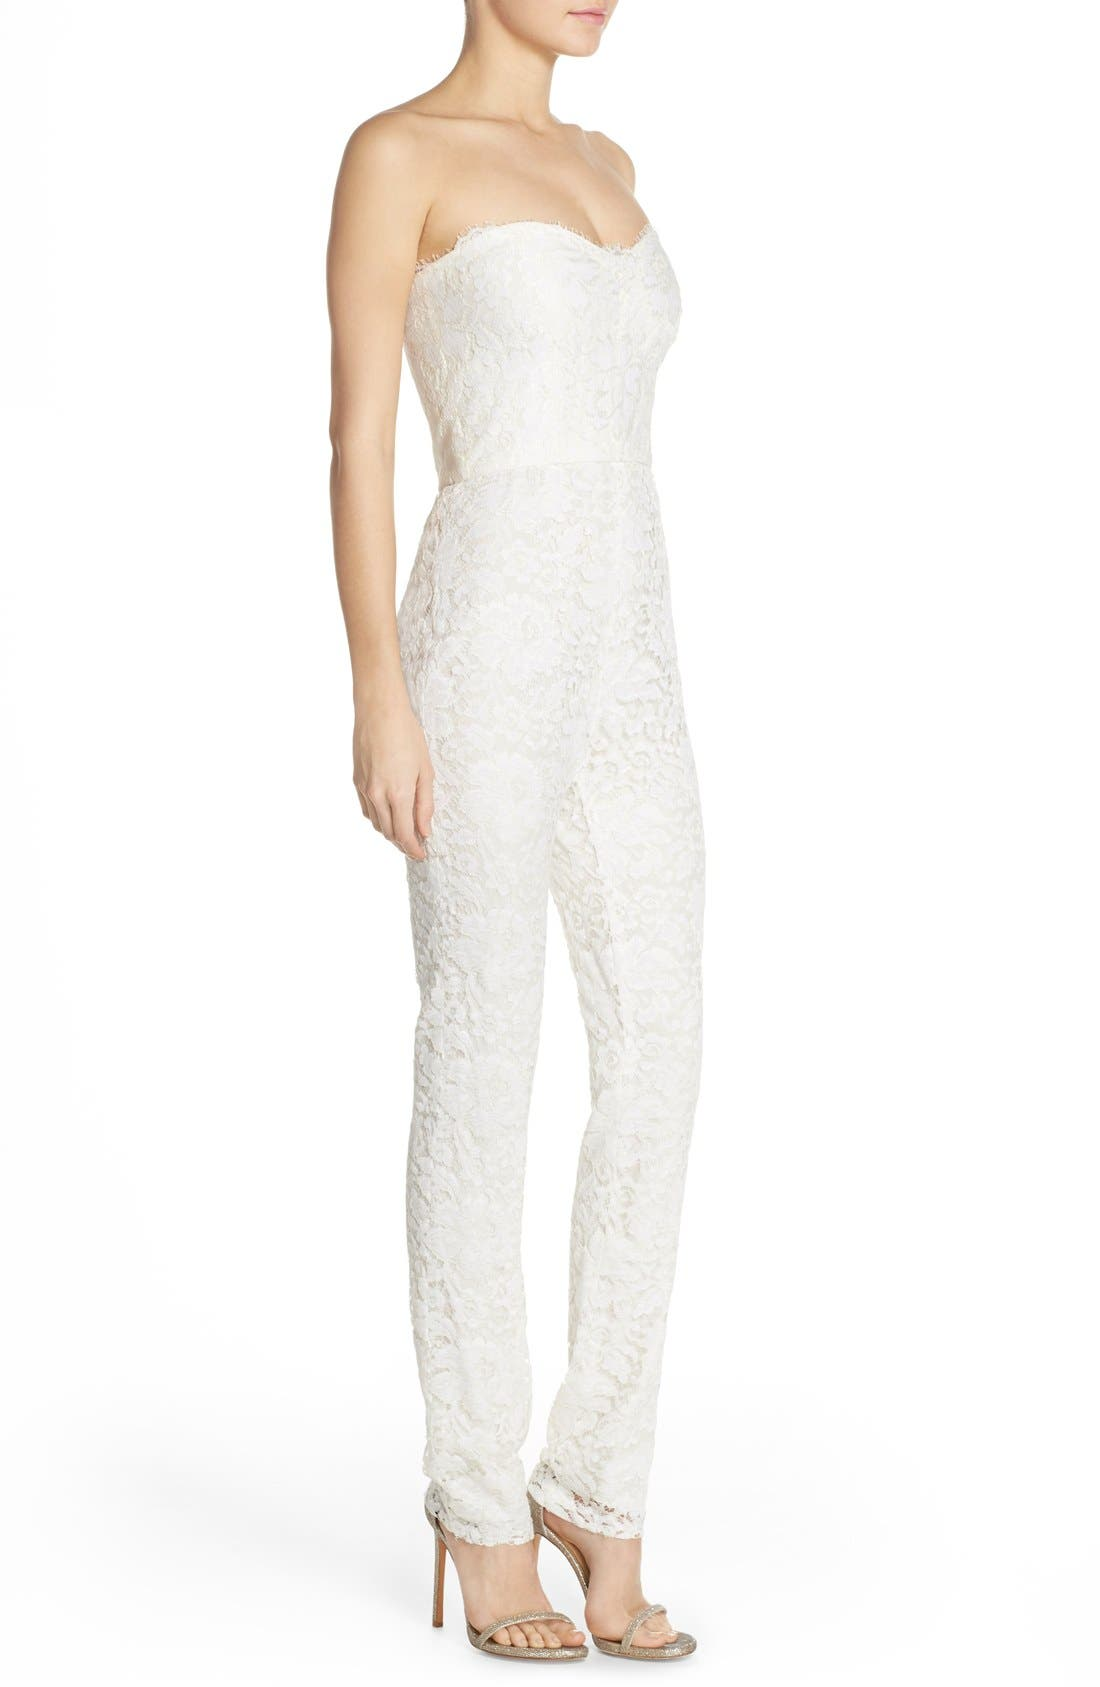 Monique Lhuillier Ready to Wed Strapless Chantilly Lace Jumpsuit,                             Alternate thumbnail 3, color,                             Silk White